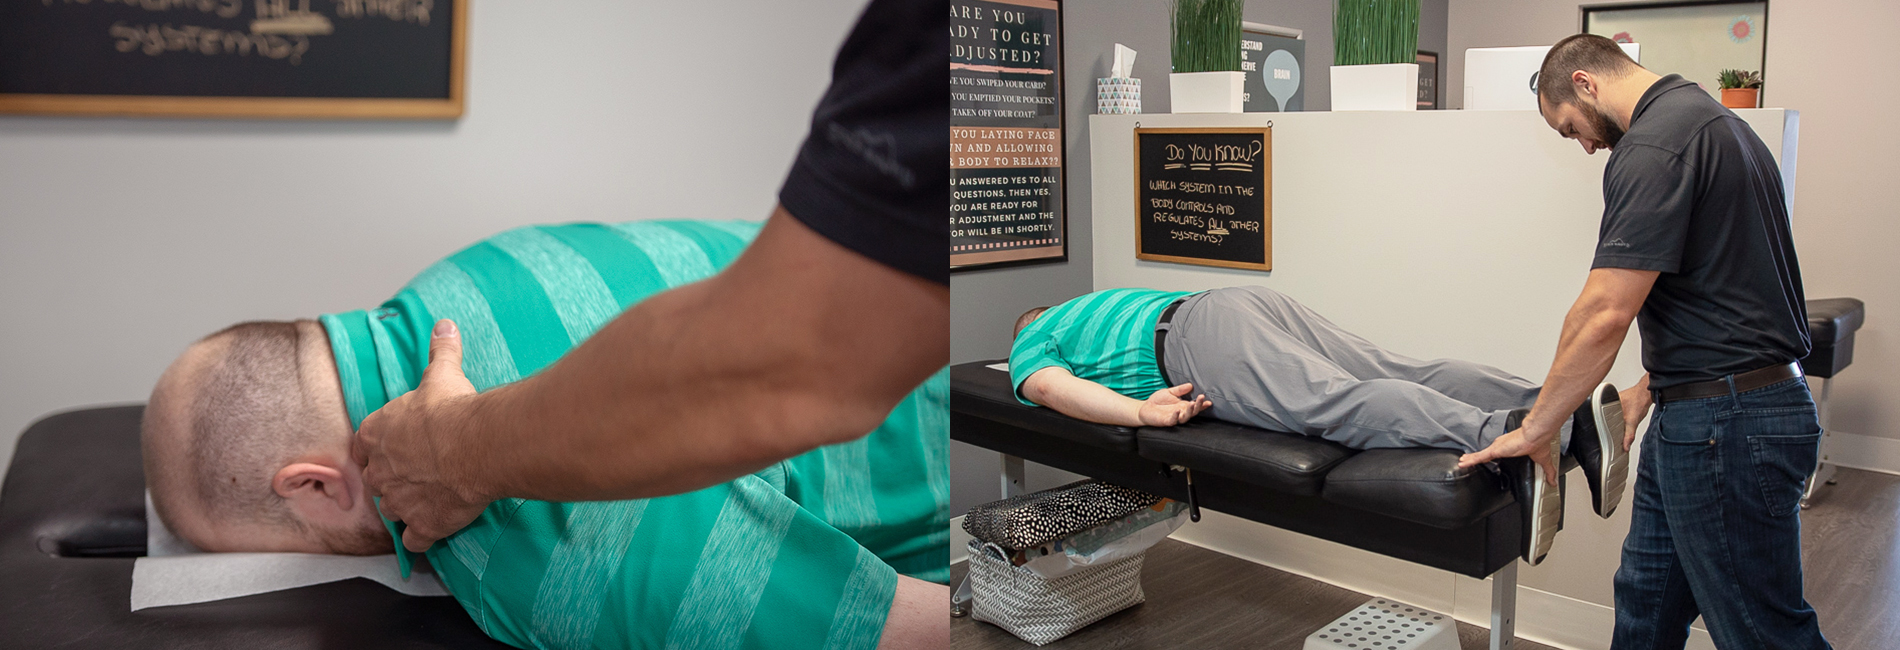 True correction vs. temporary relief at Reach Chiropractic in Kennesaw